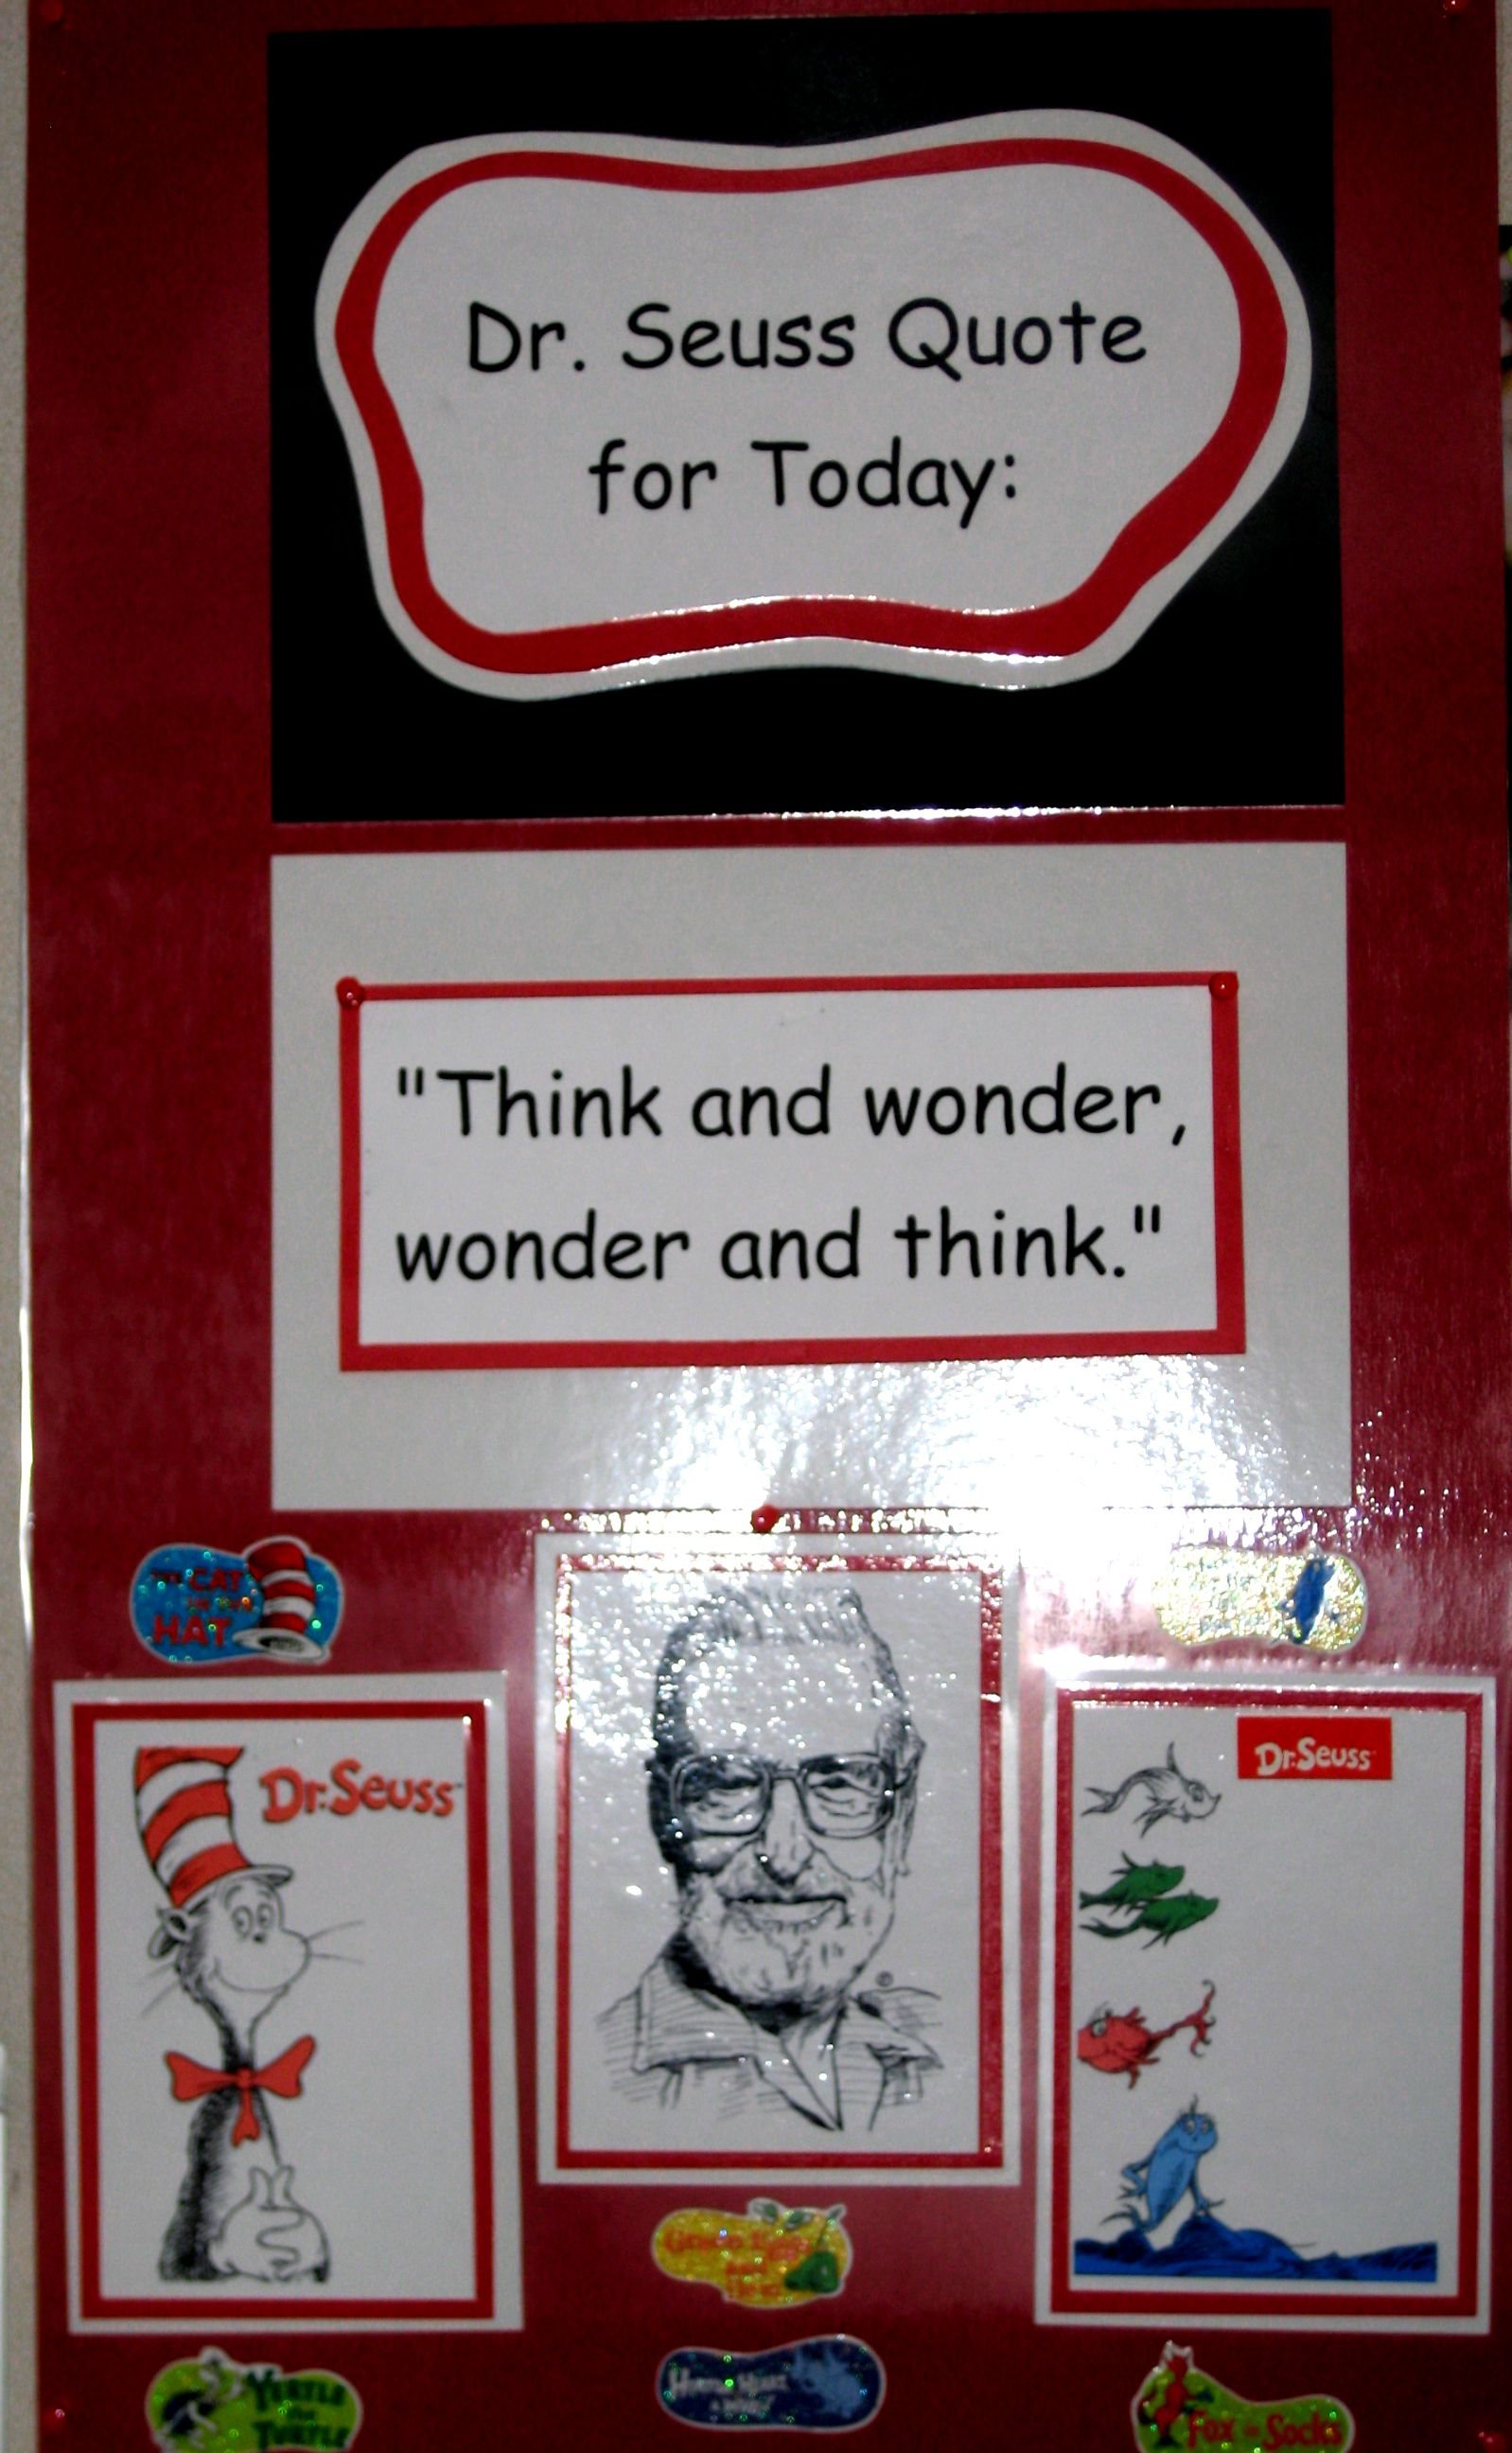 Dr. Seuss has hundreds of quotes about life-lessons and friendship!